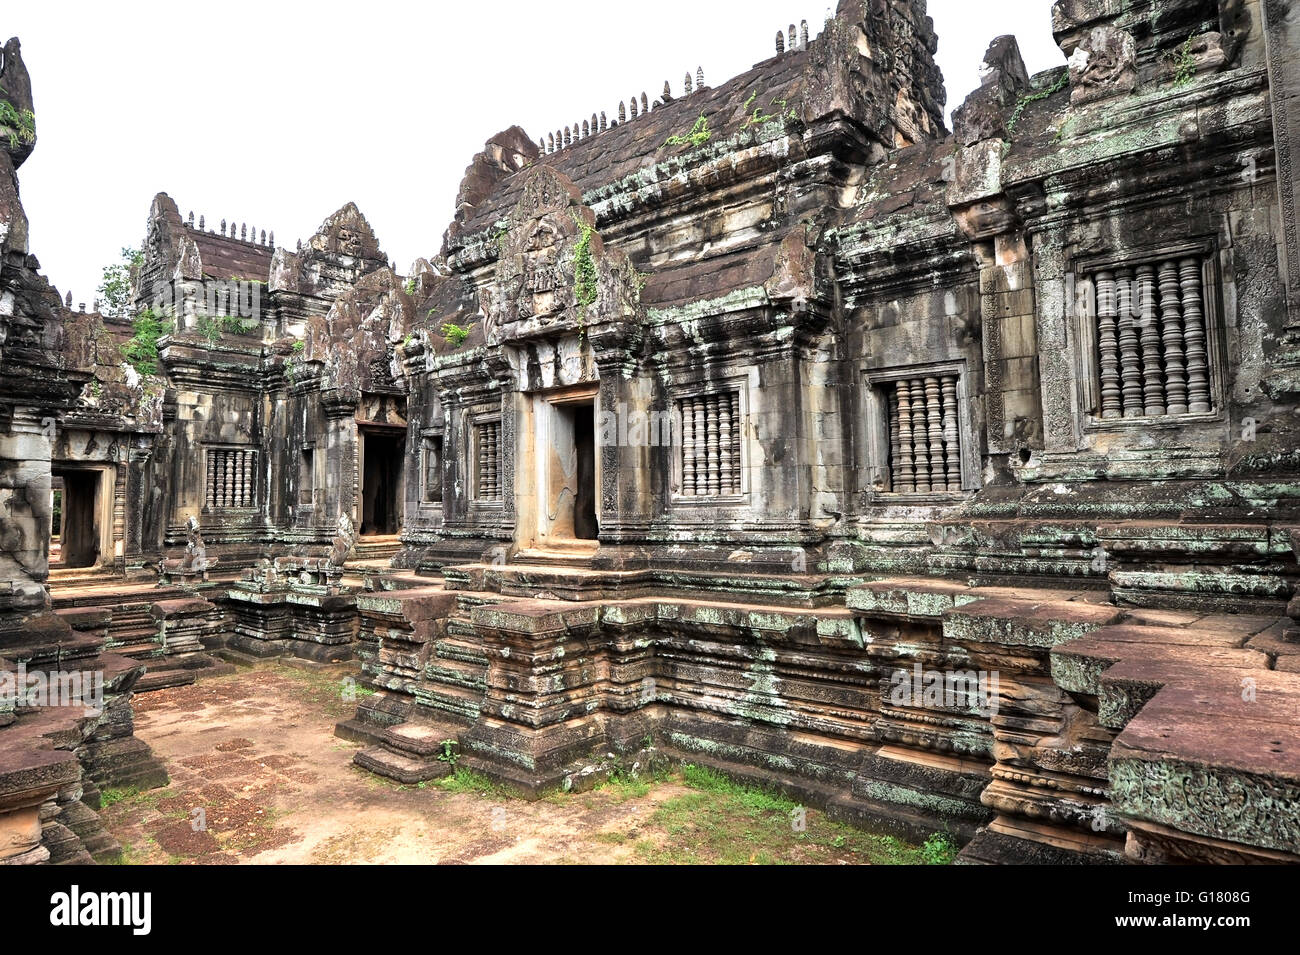 Angkor Wat is a temple complex in Cambodia and the largest religious monument in the world. Stock Photo